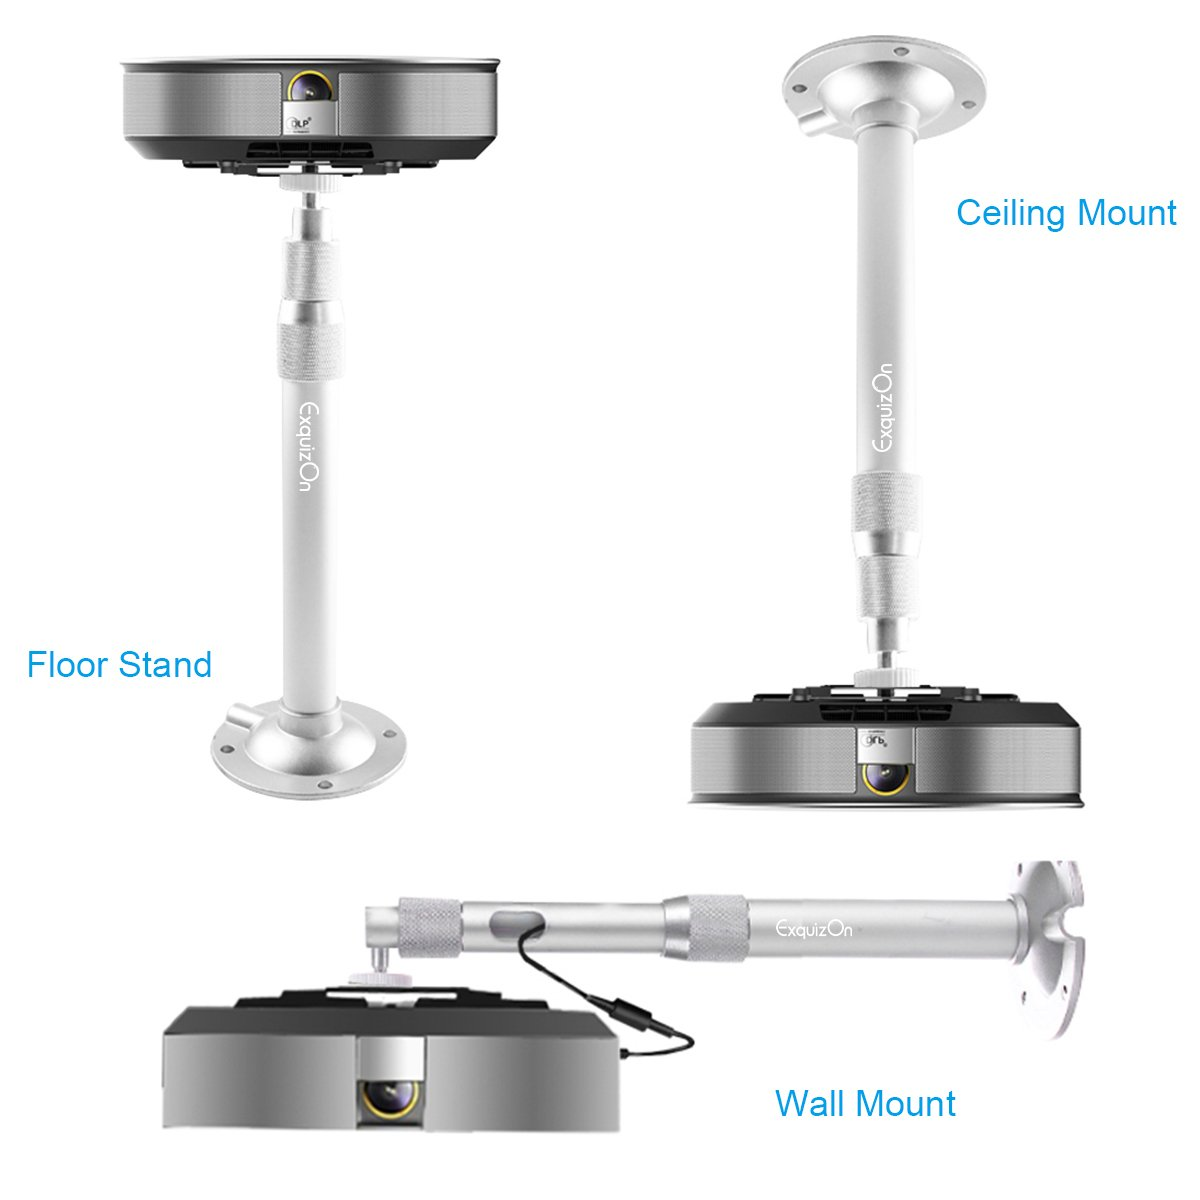 Exquizon Projector Mount 360° Rotation and Adjustable Length From 11.8 To 17.7 Inches Max Load 4.4 Lbs Overhead Ceiling Wall Projector Mount Hanger For Mini Projector CCTV DVR Camera, Silver